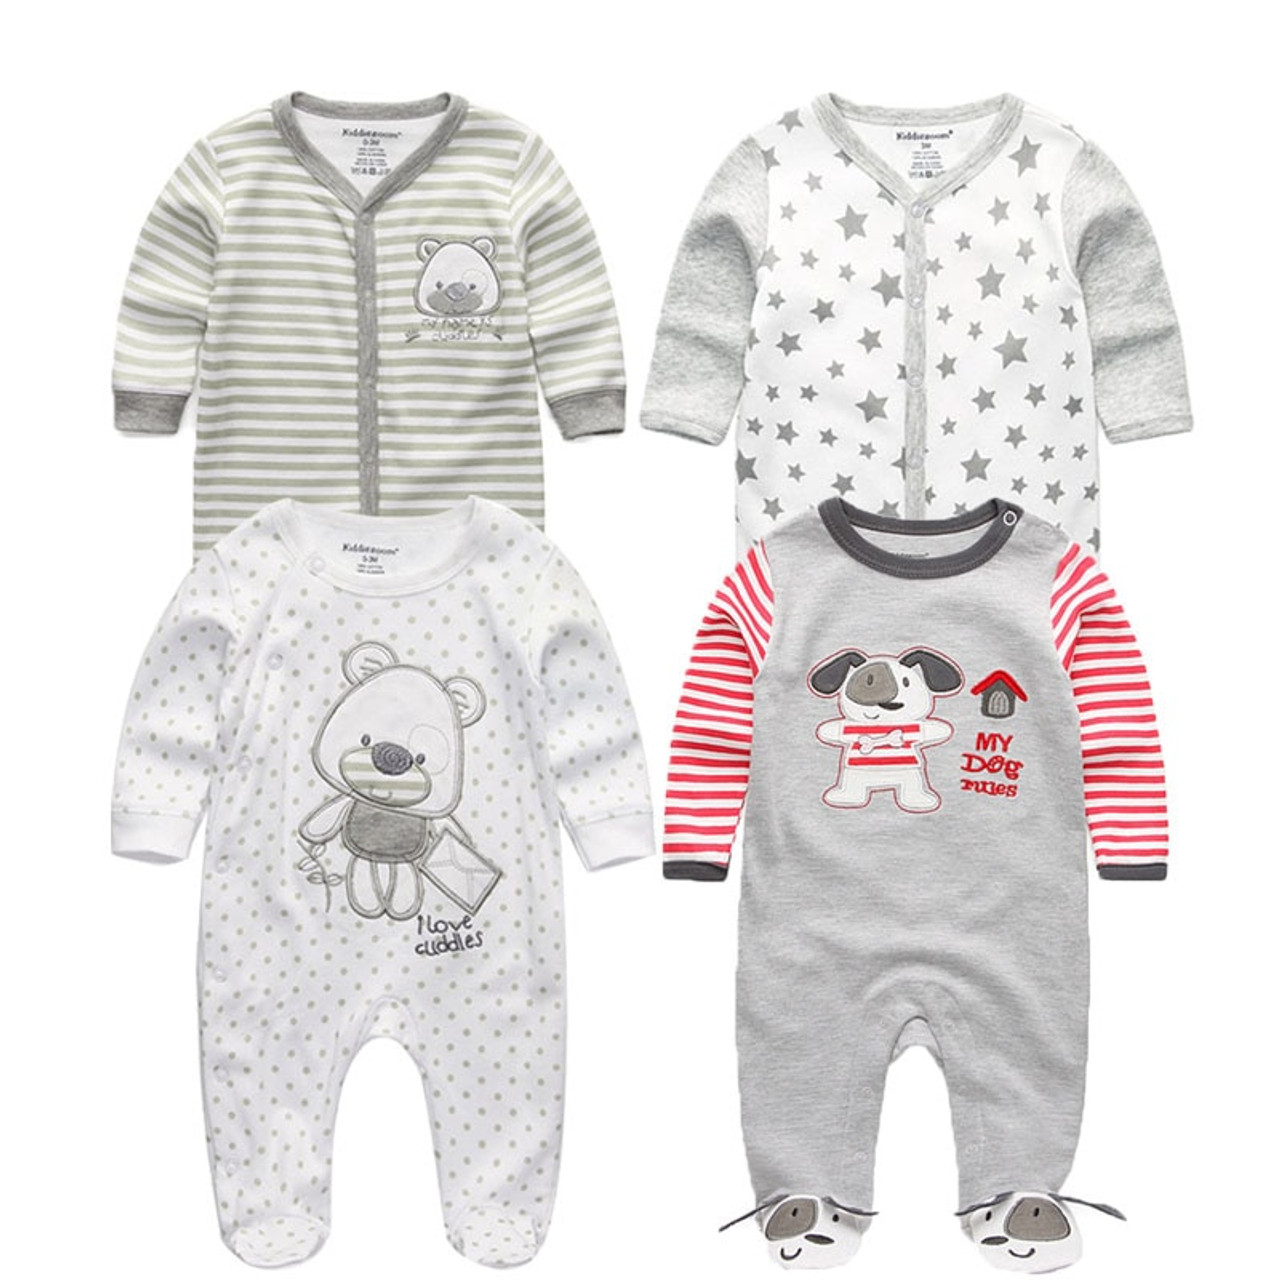 eb4da757197 ... 2018 5PCS lot Newborn Baby Girl Rompers Full Long Sleeve Cotton  Jumpsuit O-Neck ...